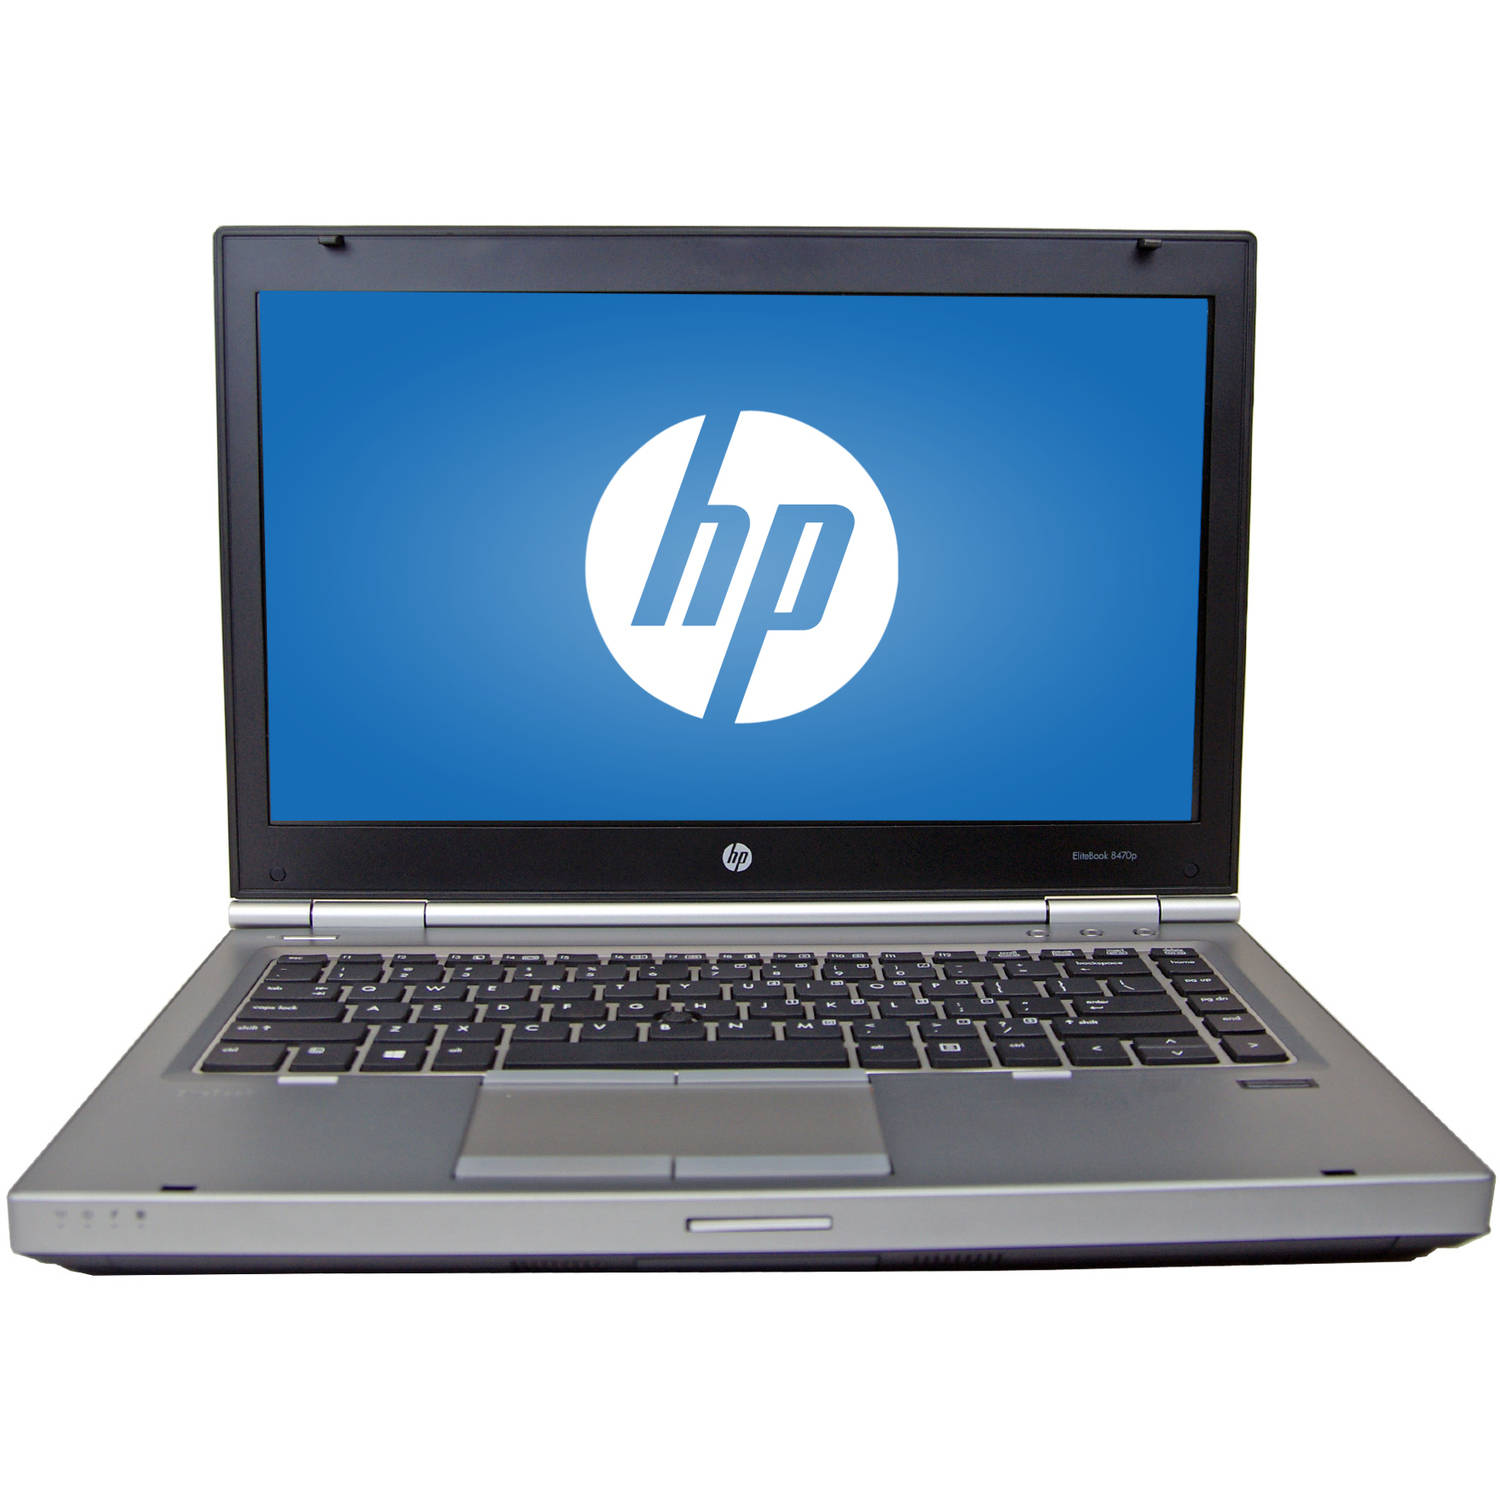 "Refurbished HP Silver 14"" Elitebook 8470P Laptop PC with Intel Core i5-3320M Processor, 8GB Memory, 750GB Hard Drive and Windows 7 Professional"